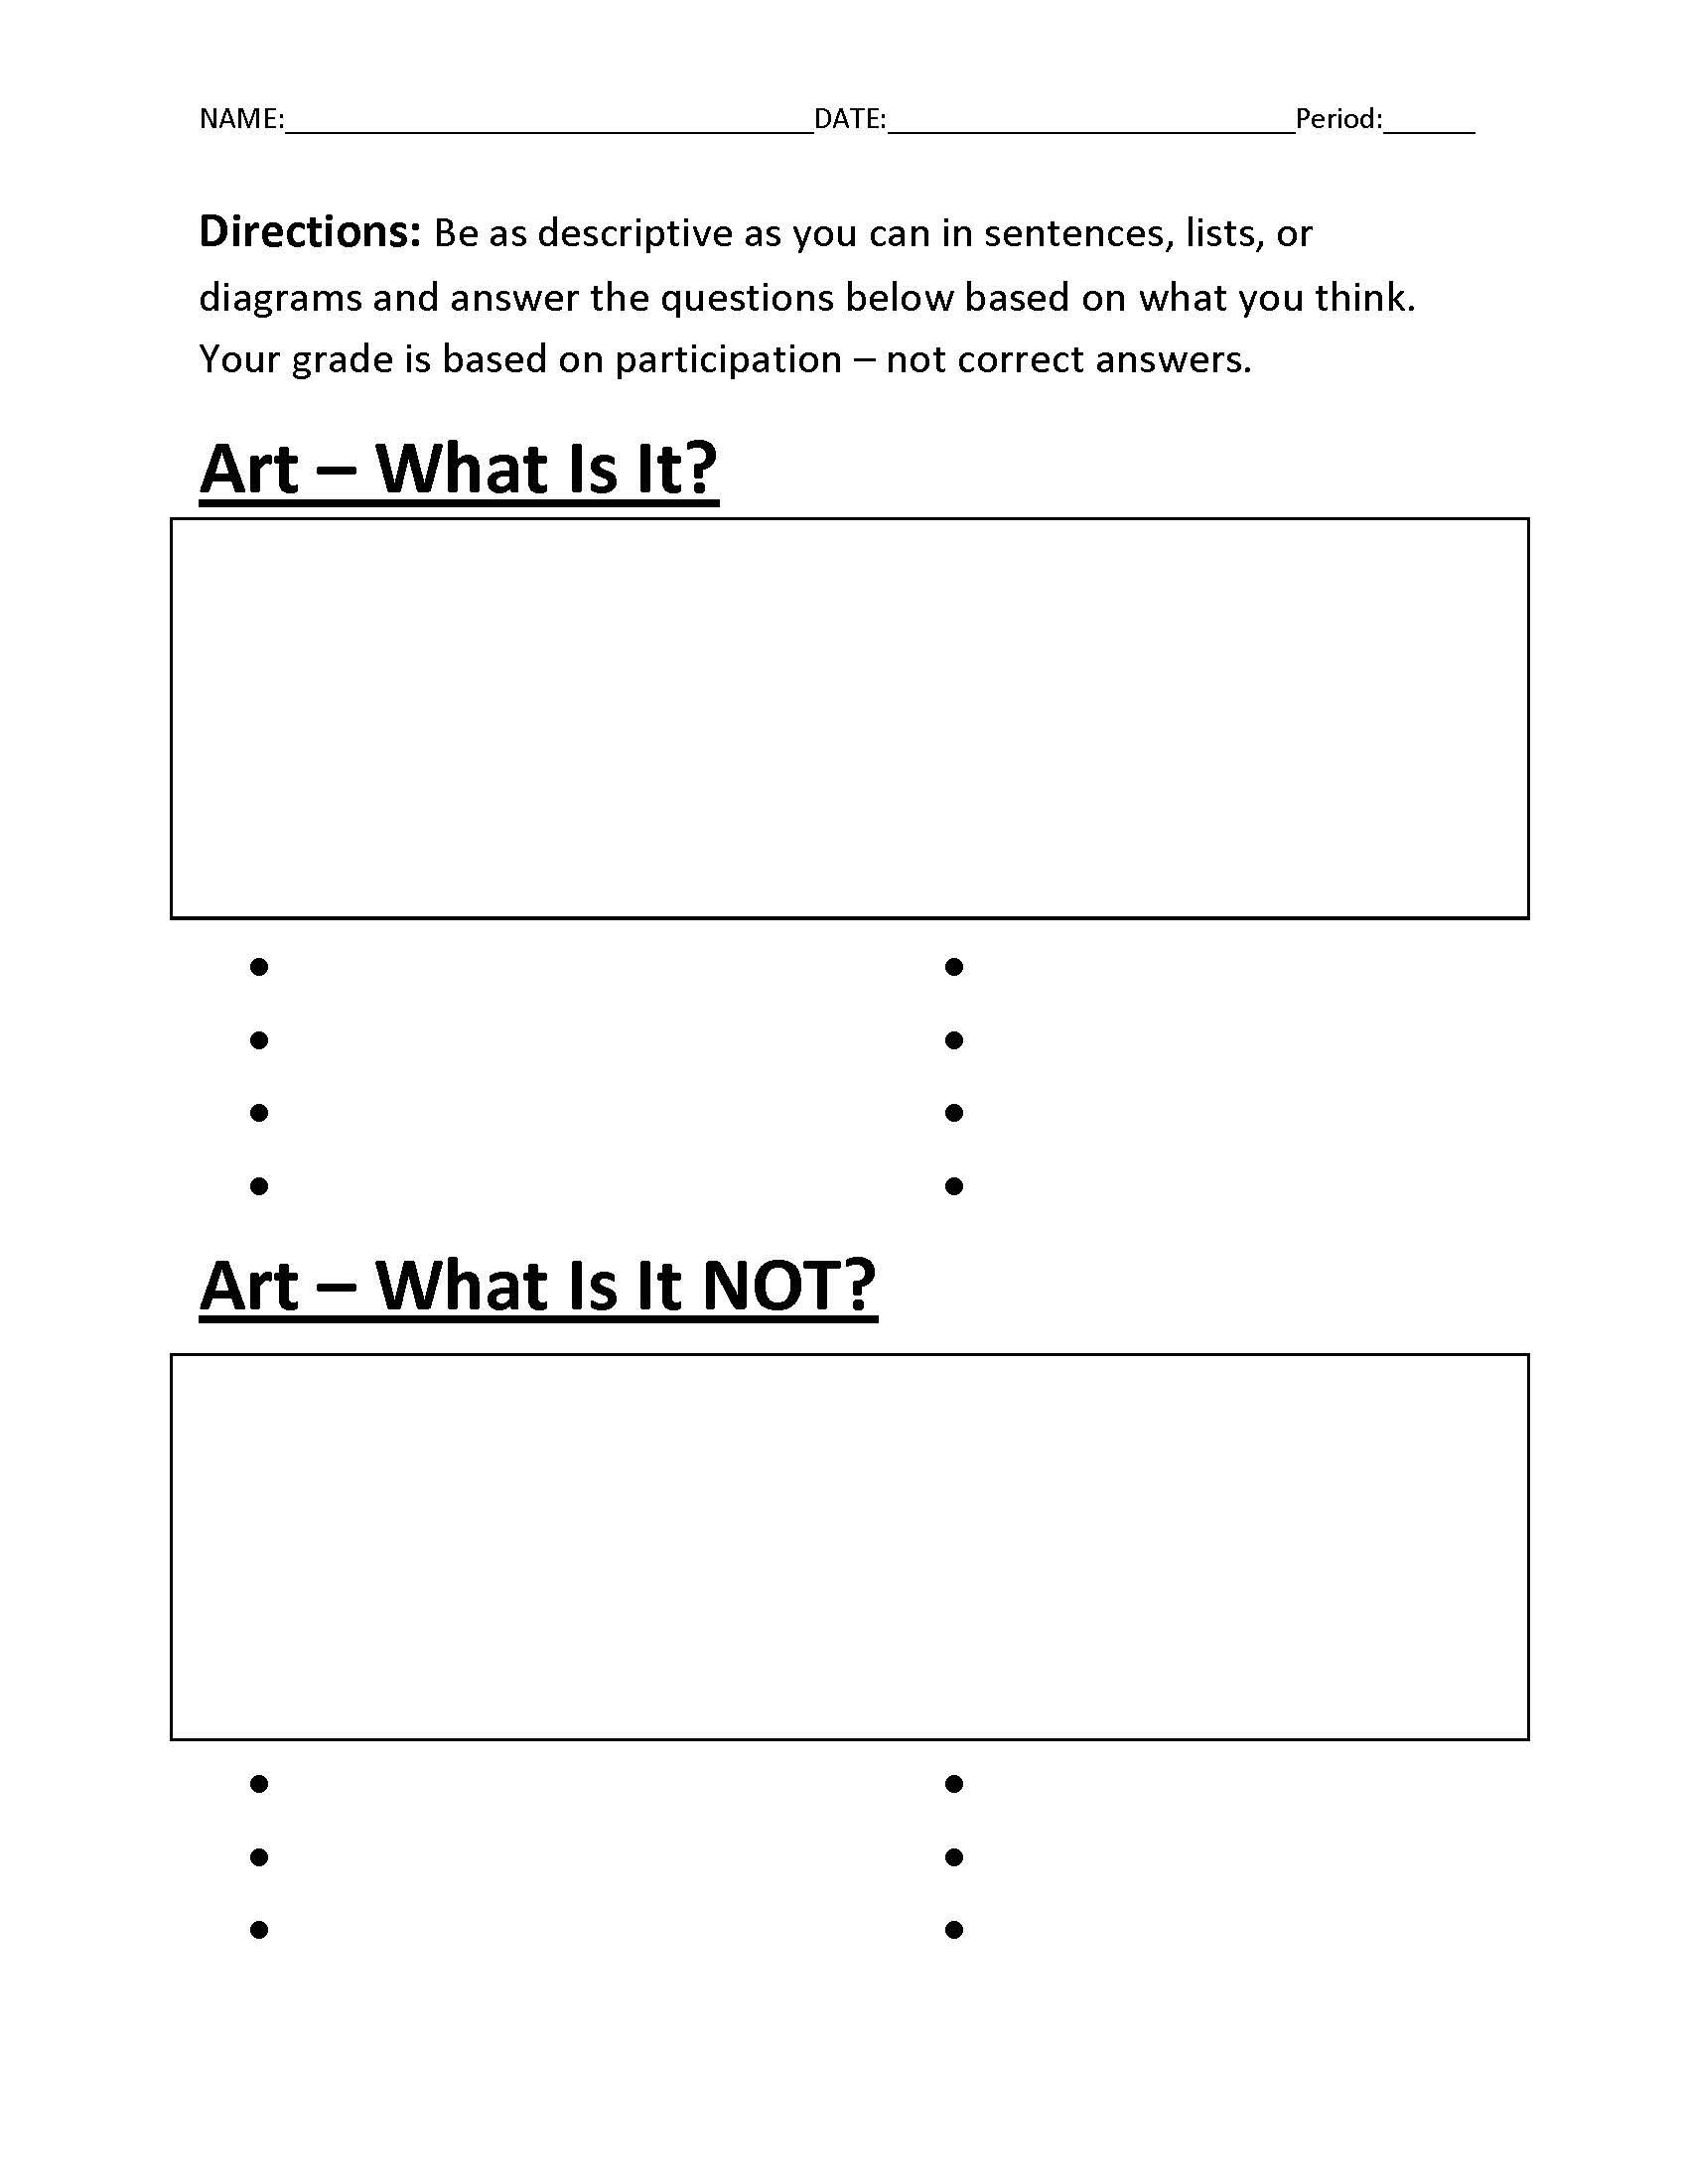 worksheet Art Analysis Worksheet what is art free introduction to worksheet for classroom teachers great first day activity springboard conversation a